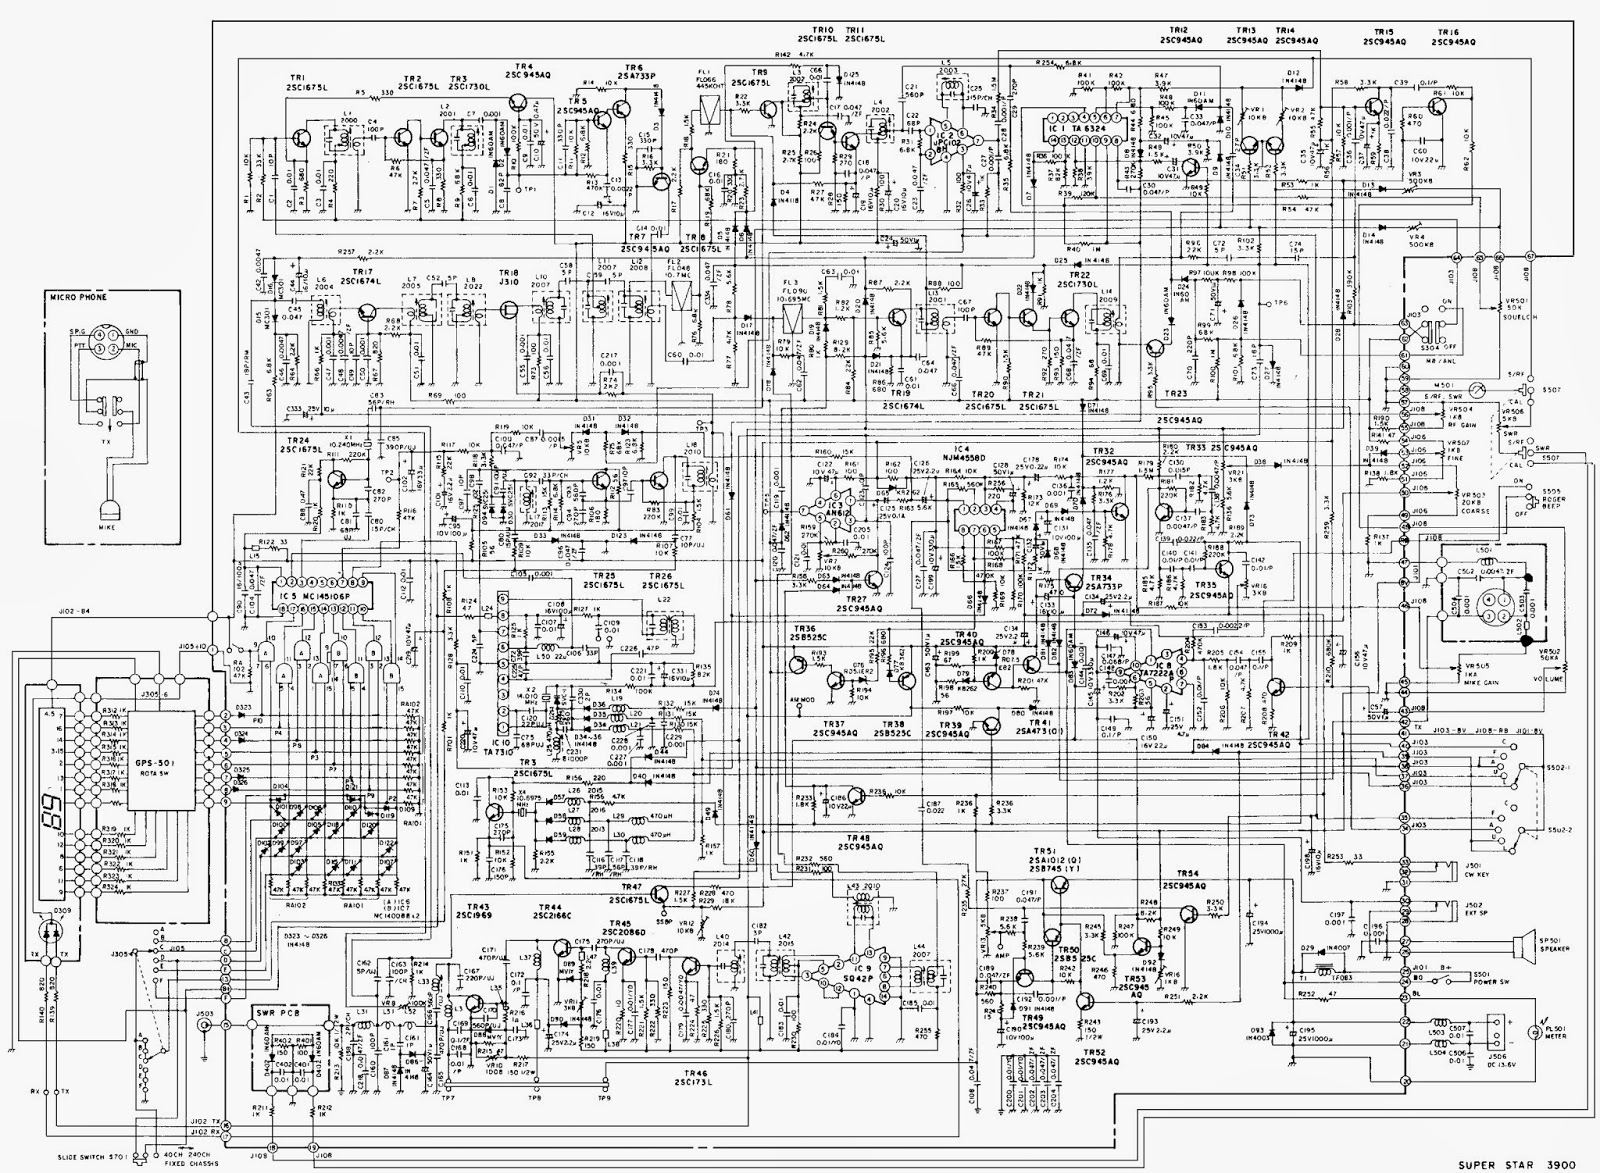 4700 International Truck Wiring Diagrams Wedocable - WIRING CENTER •